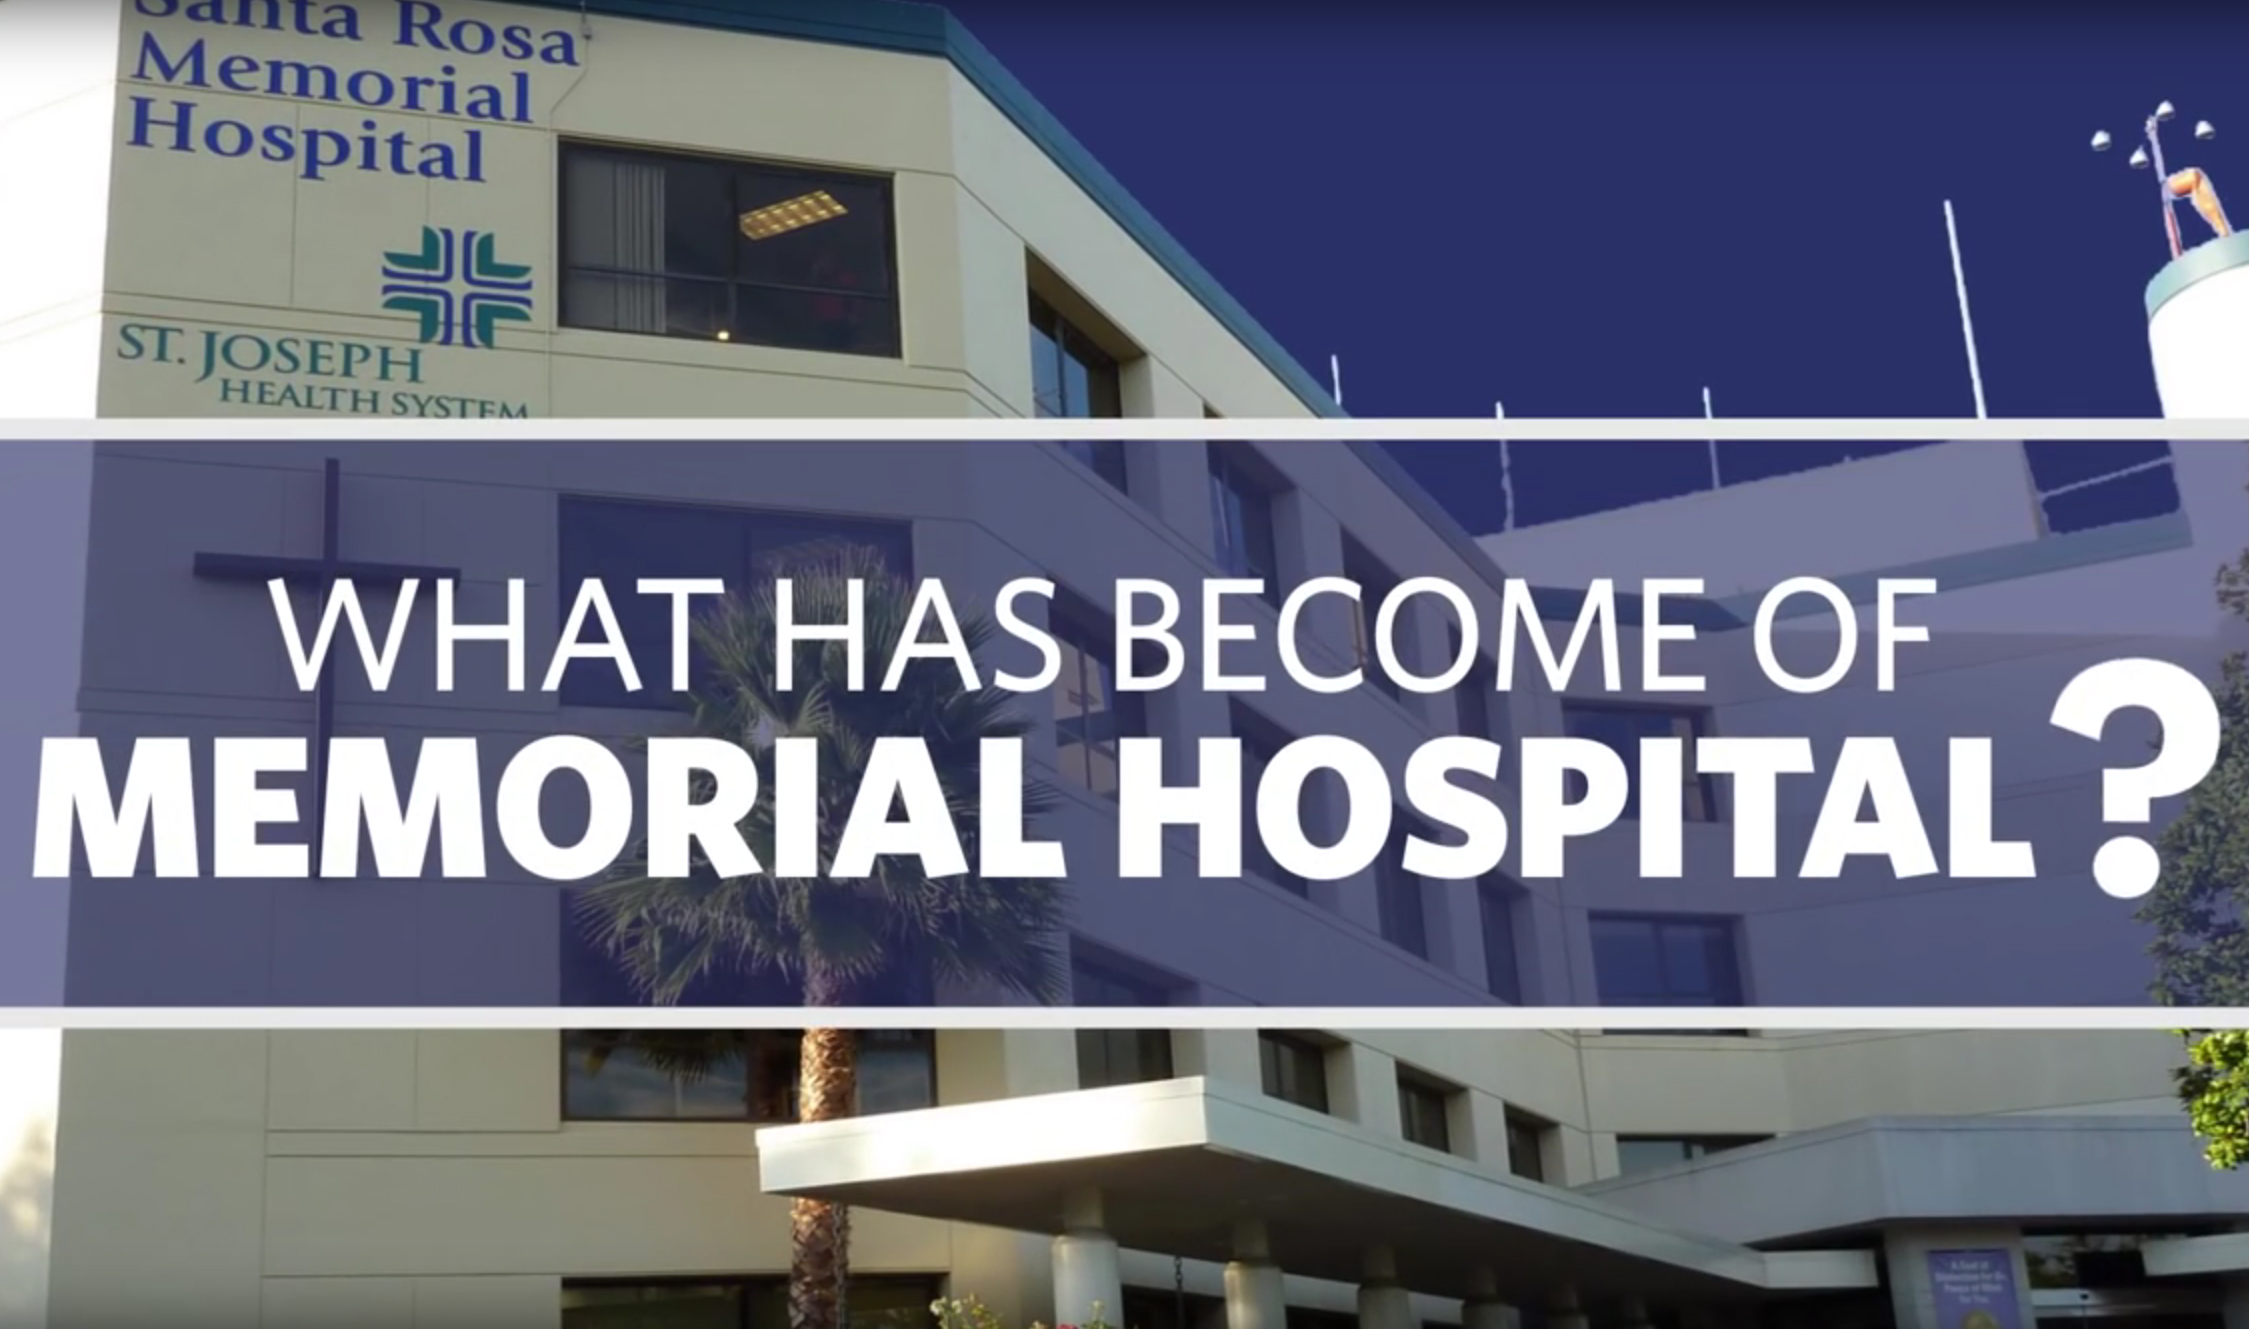 What Has Become of Memorial Hospital?